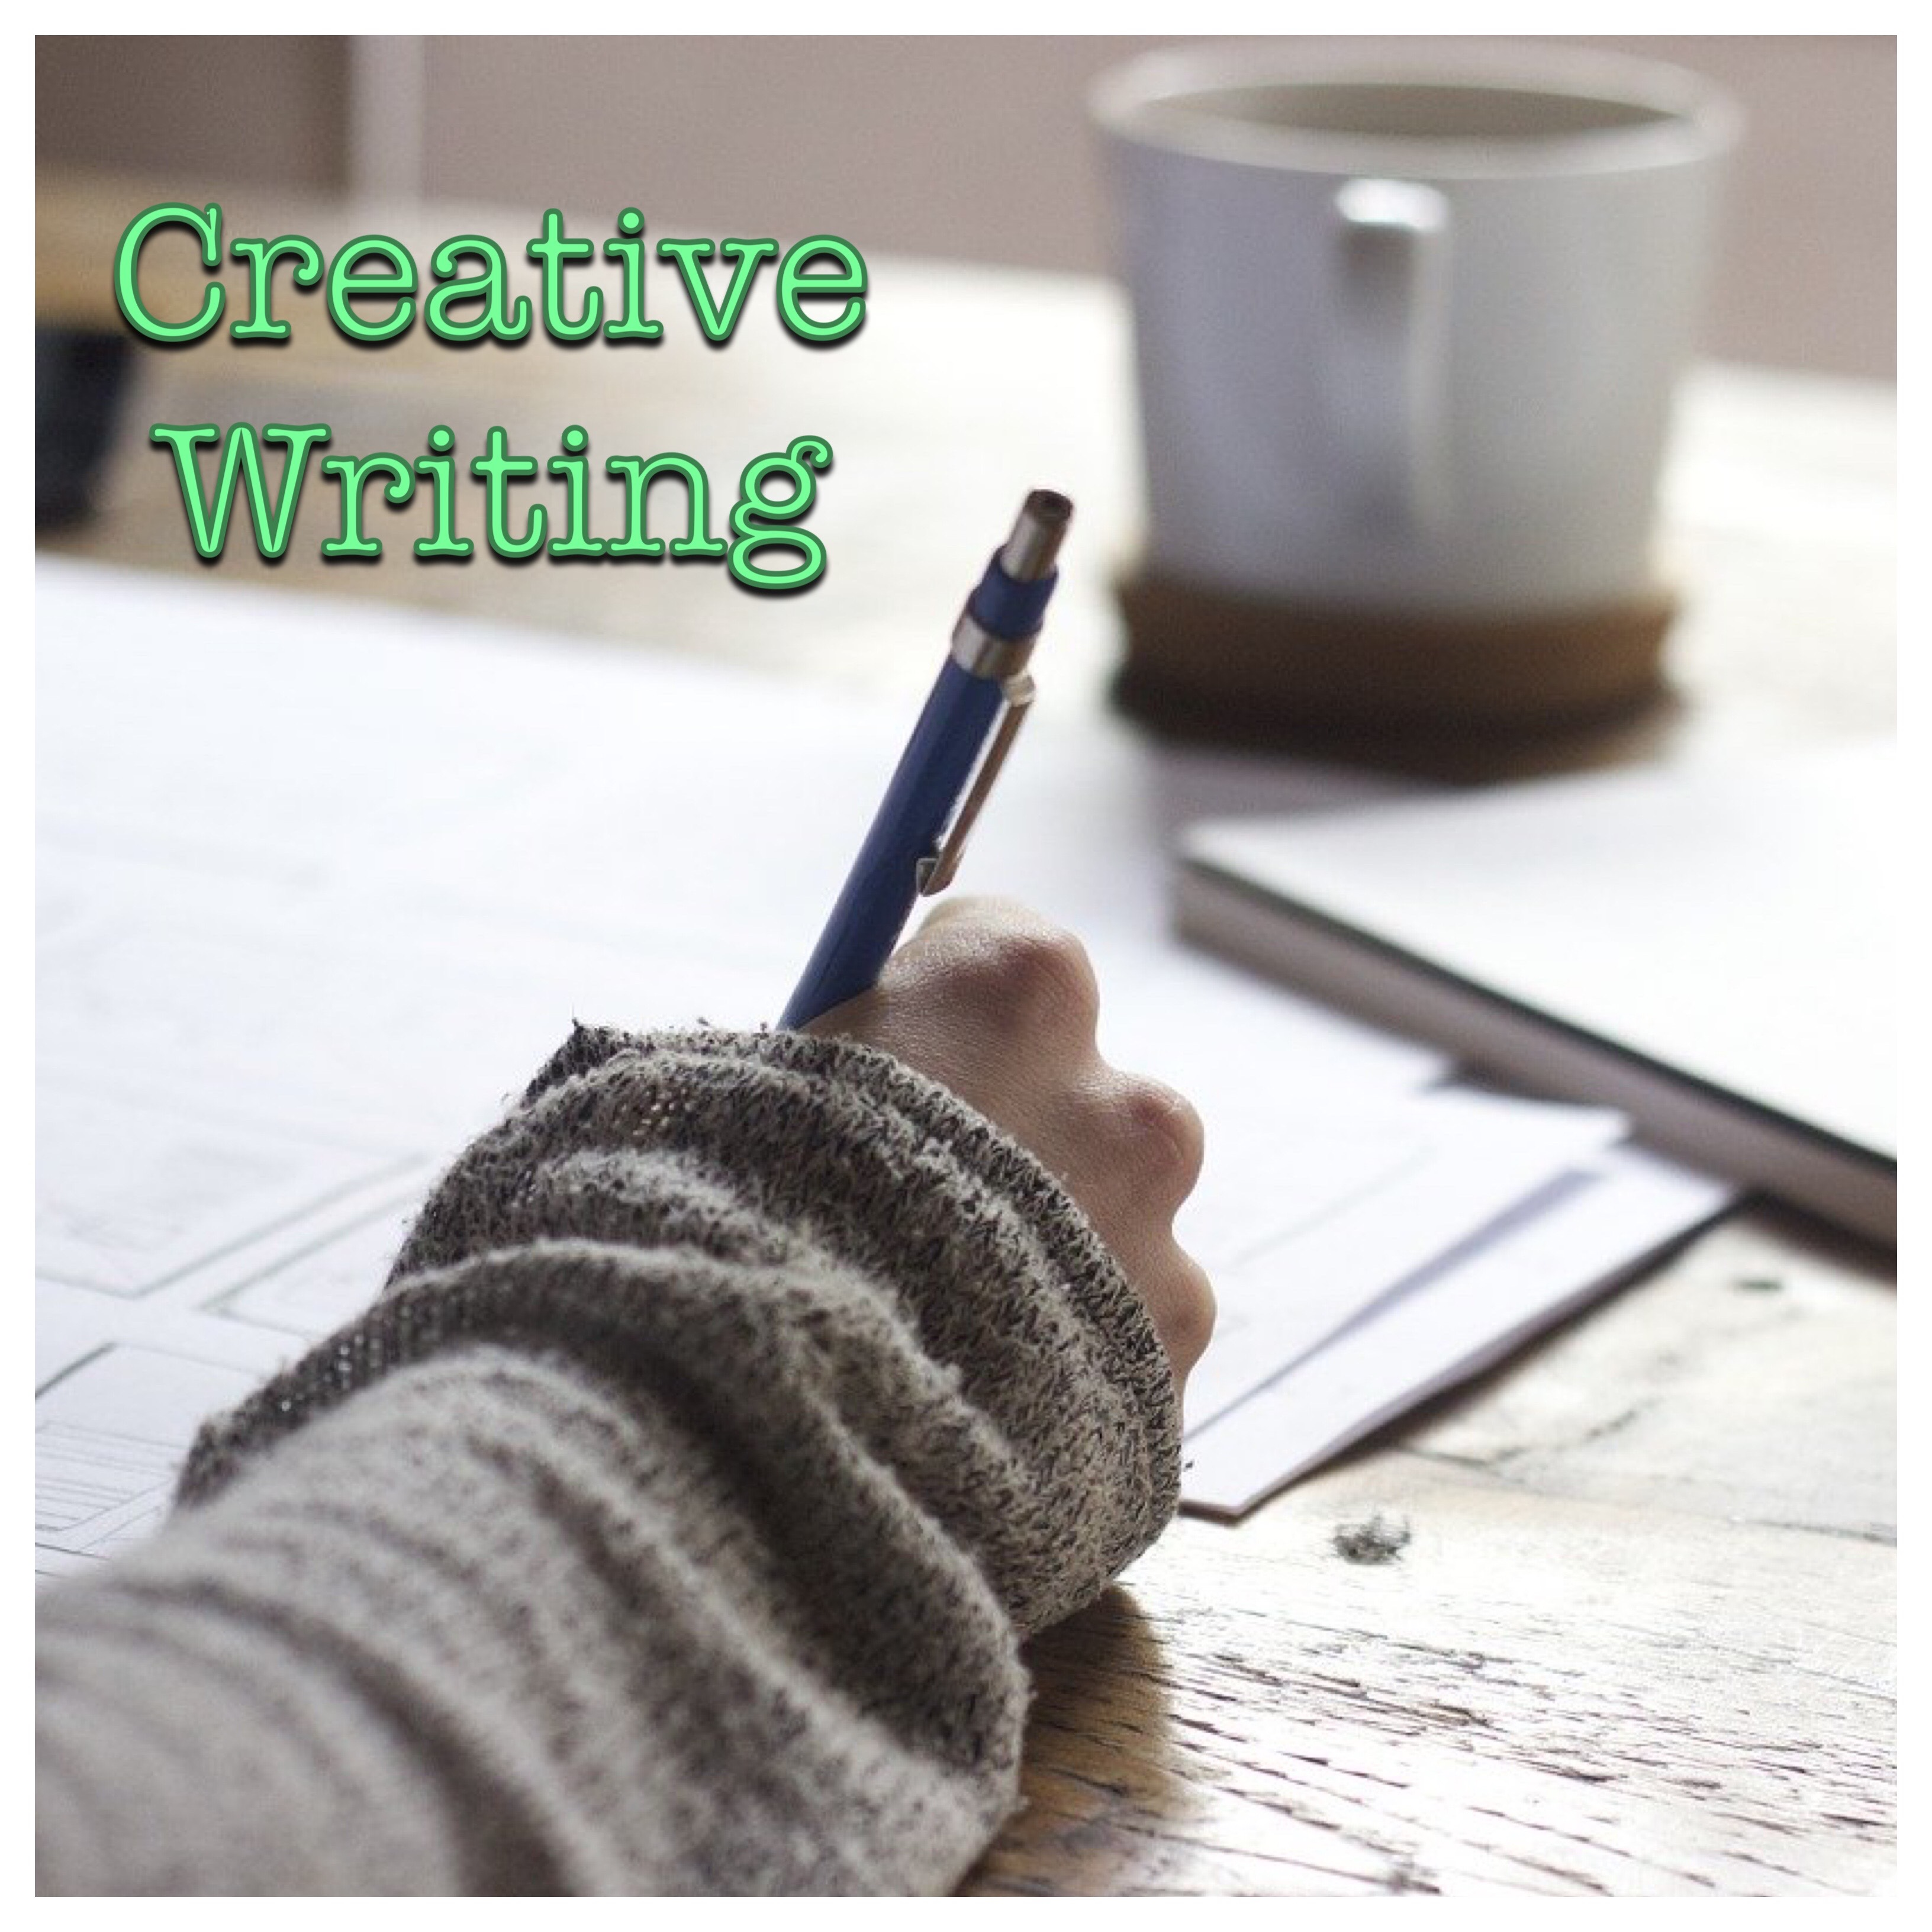 Creative Writing Logo (Hand with pen and notebook)